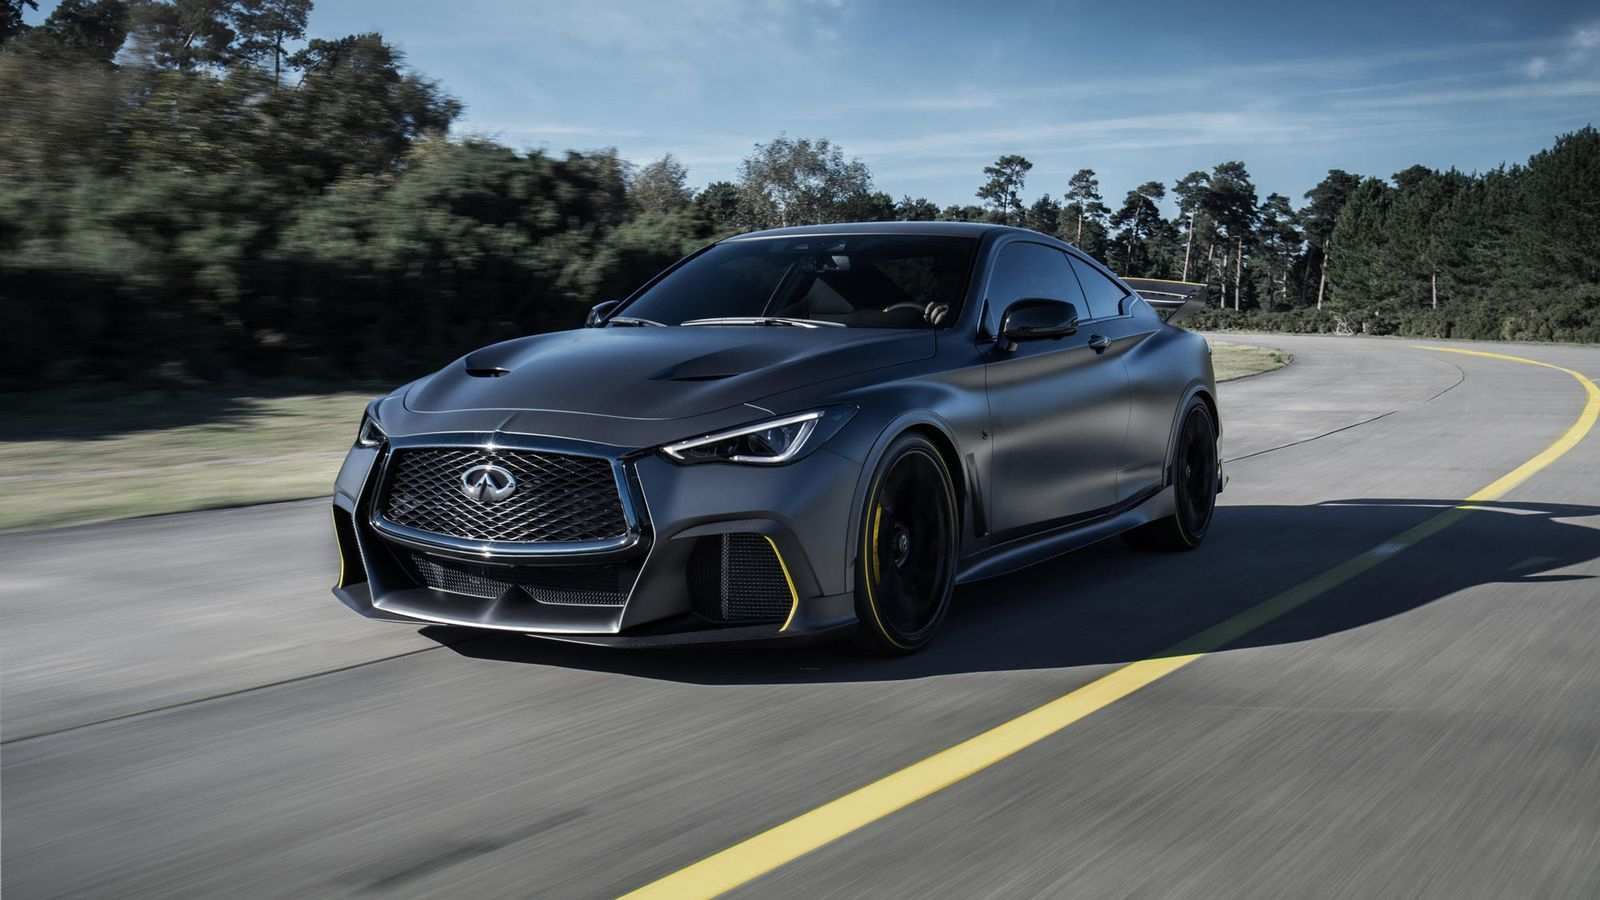 99 New 2019 Infiniti Black S Exterior and Interior by 2019 Infiniti Black S